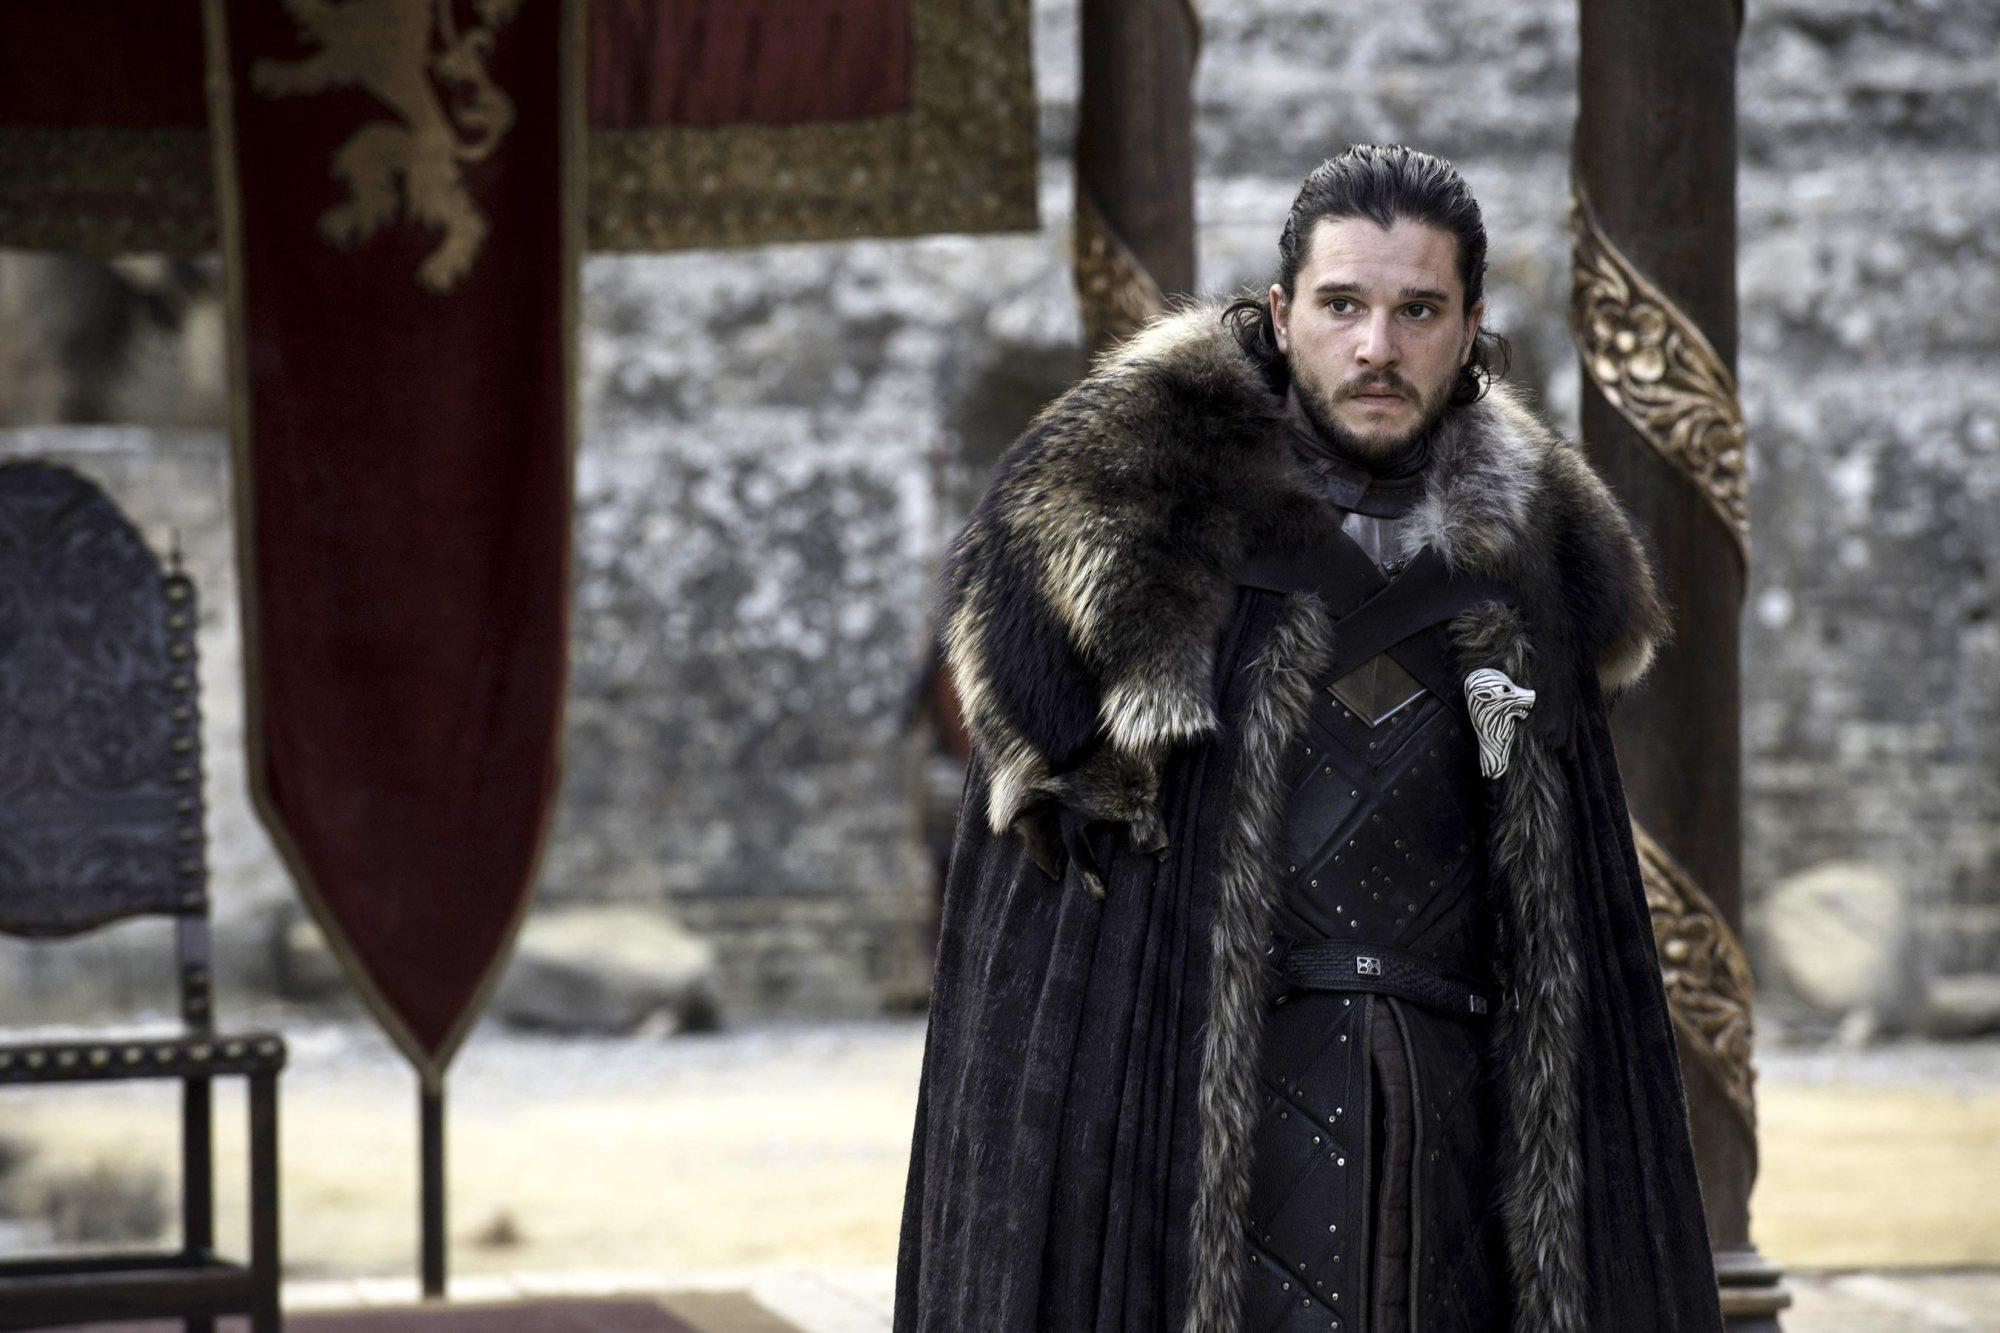 Game of Thrones: Every hint showing Jon Snow's true parents